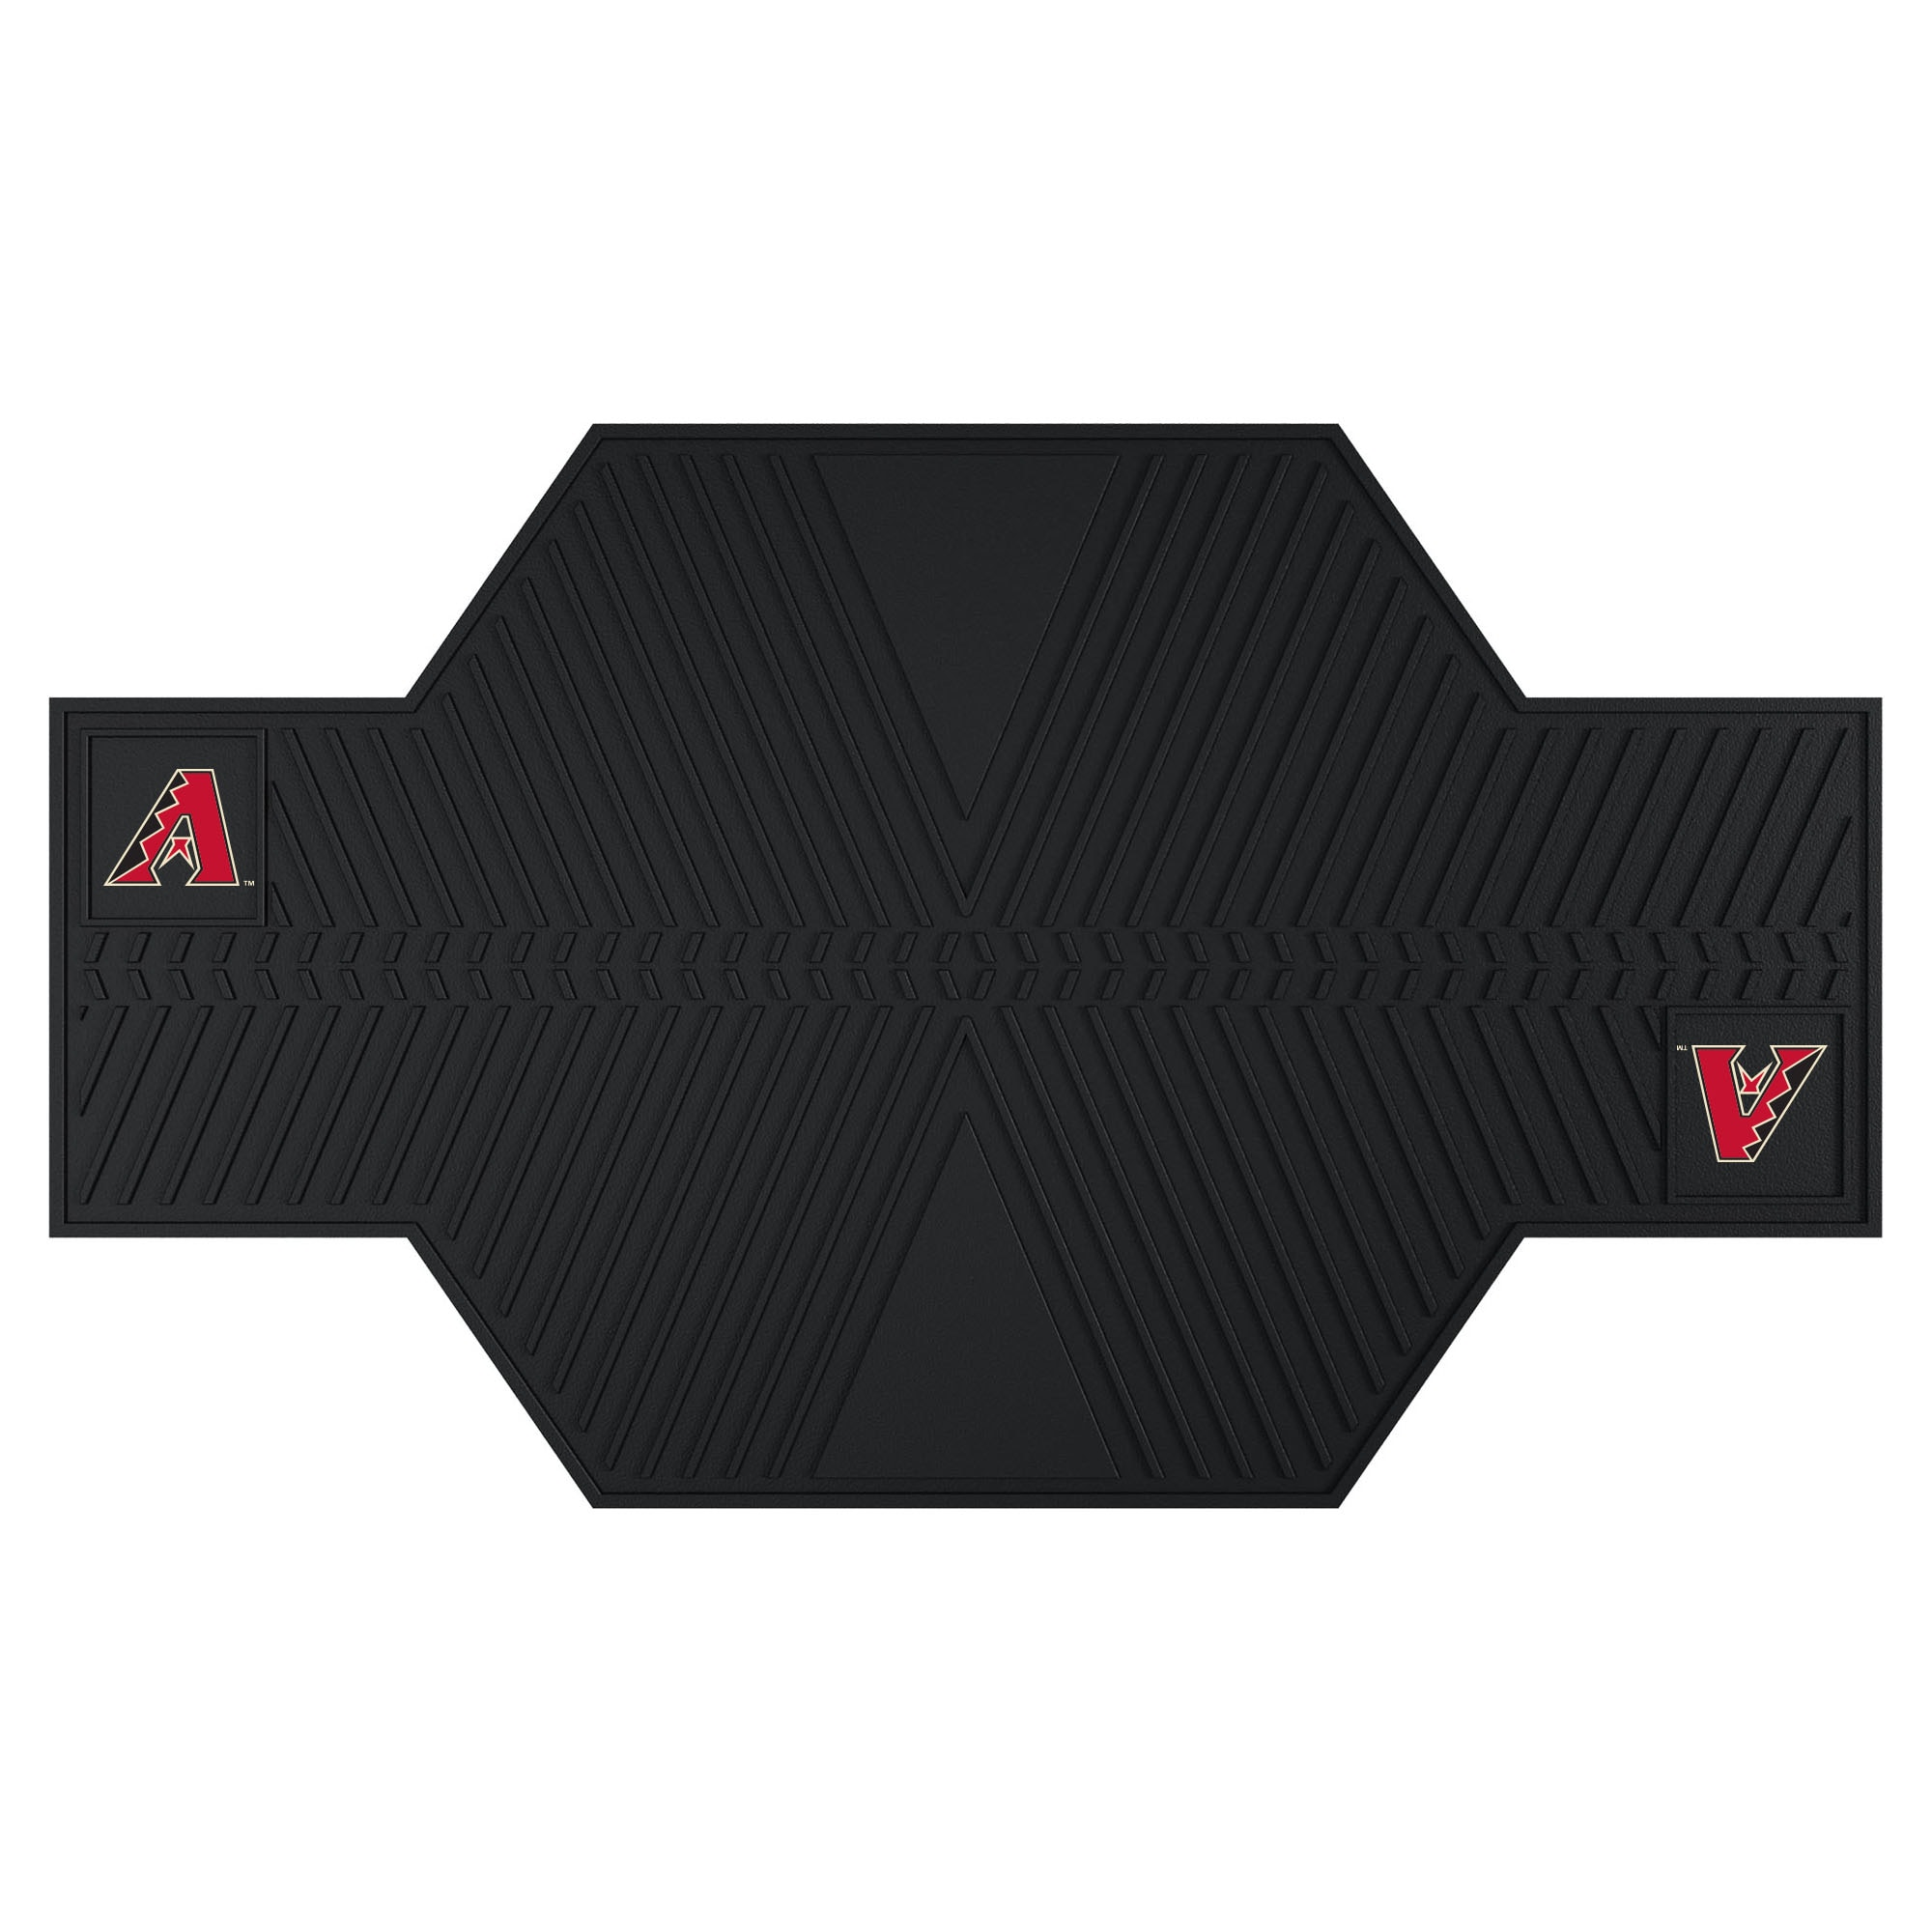 Arizona Diamondbacks Motorcycle Mat